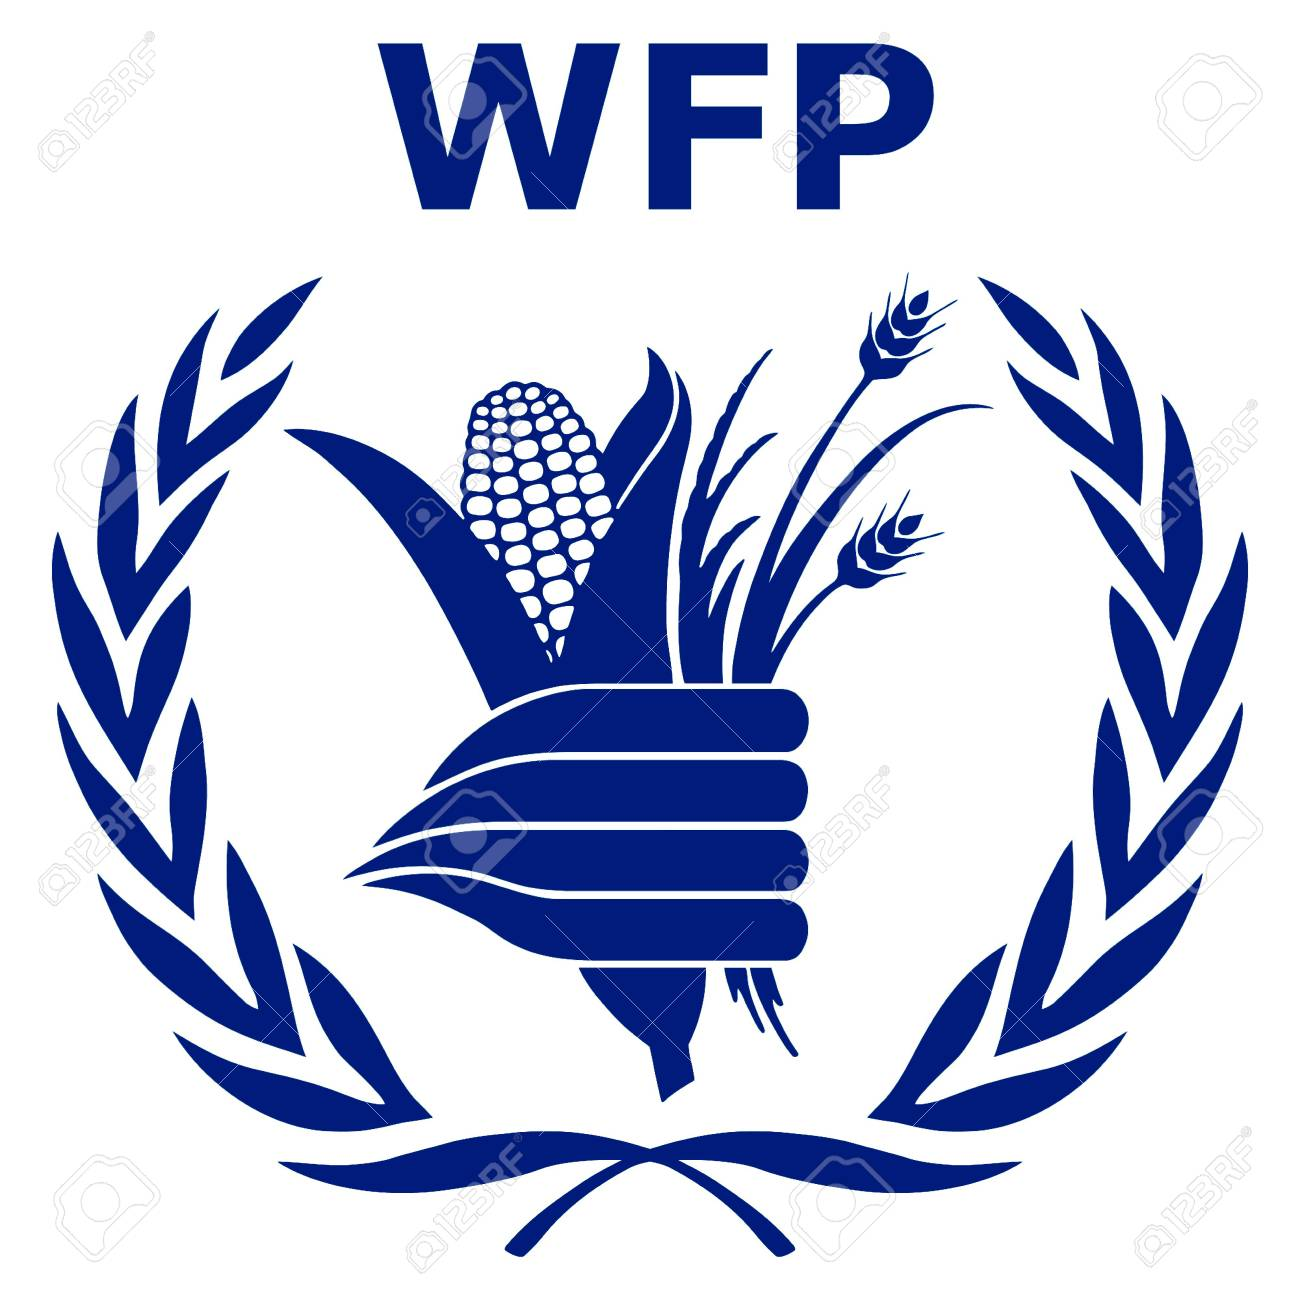 United Nations World Food Programme